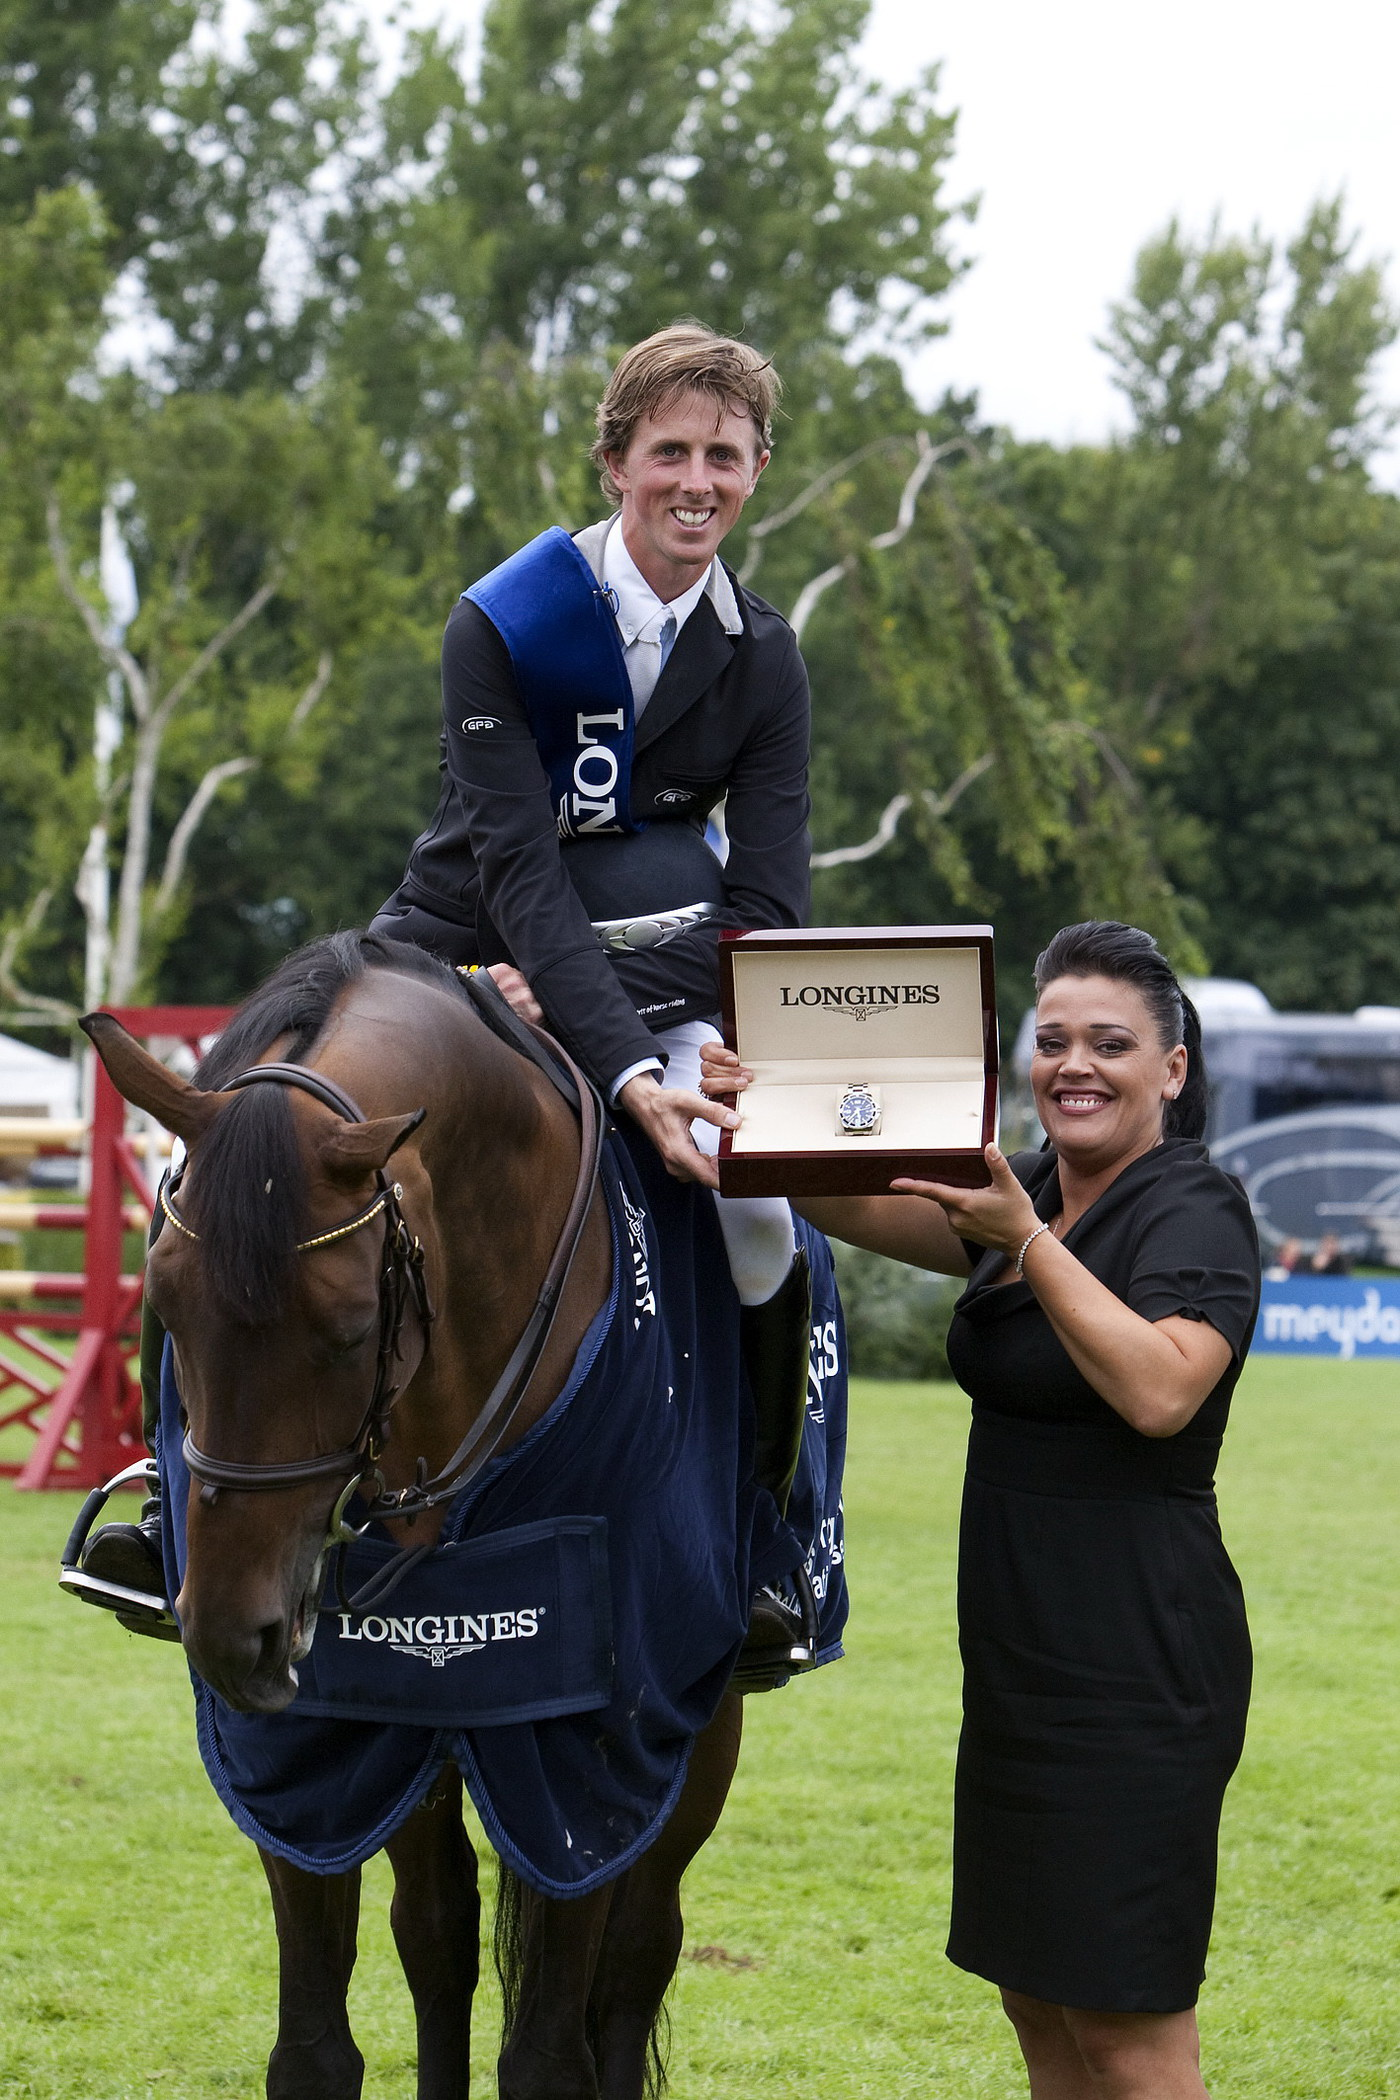 Longines Show Jumping Event: The Hickstead Royal International Horse Show 4